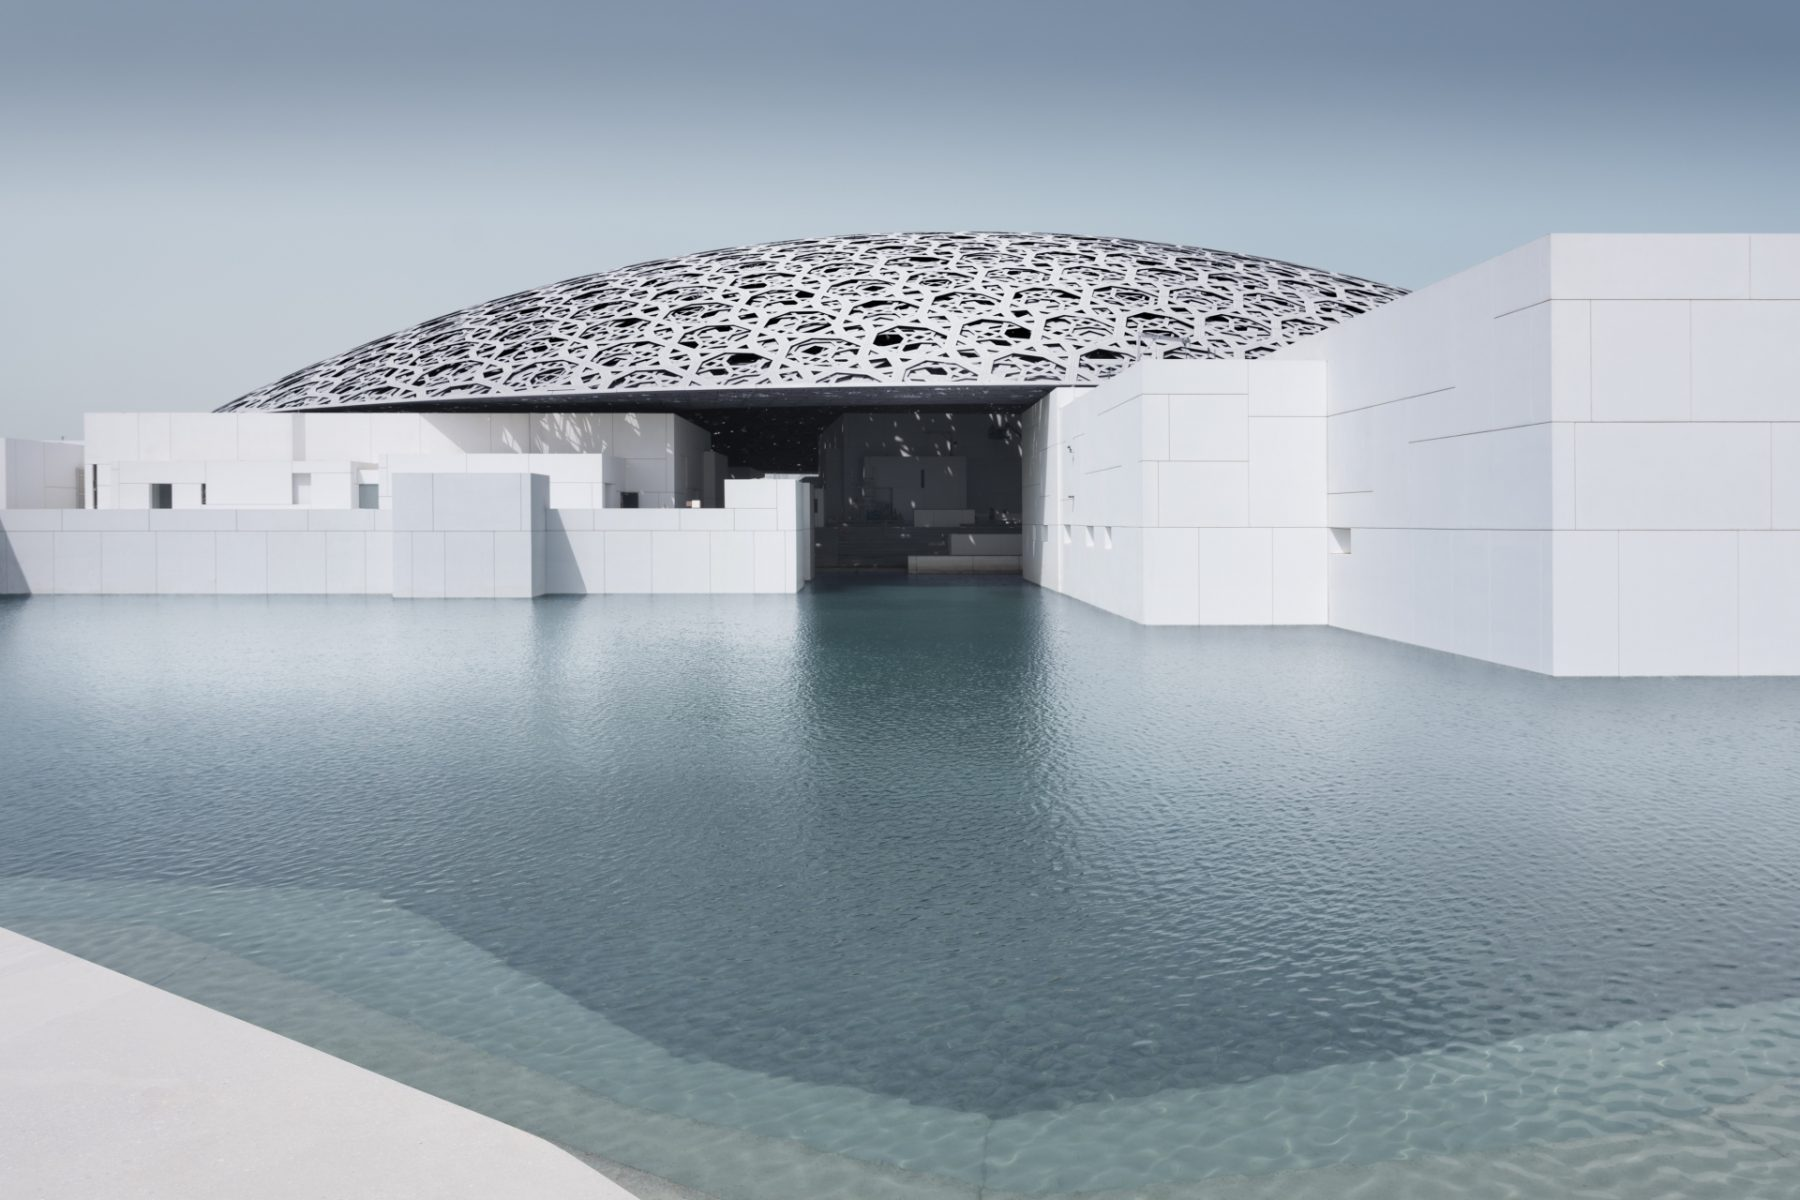 Louvre di Abu Dhabi, Photography Mohamed Somji (1)